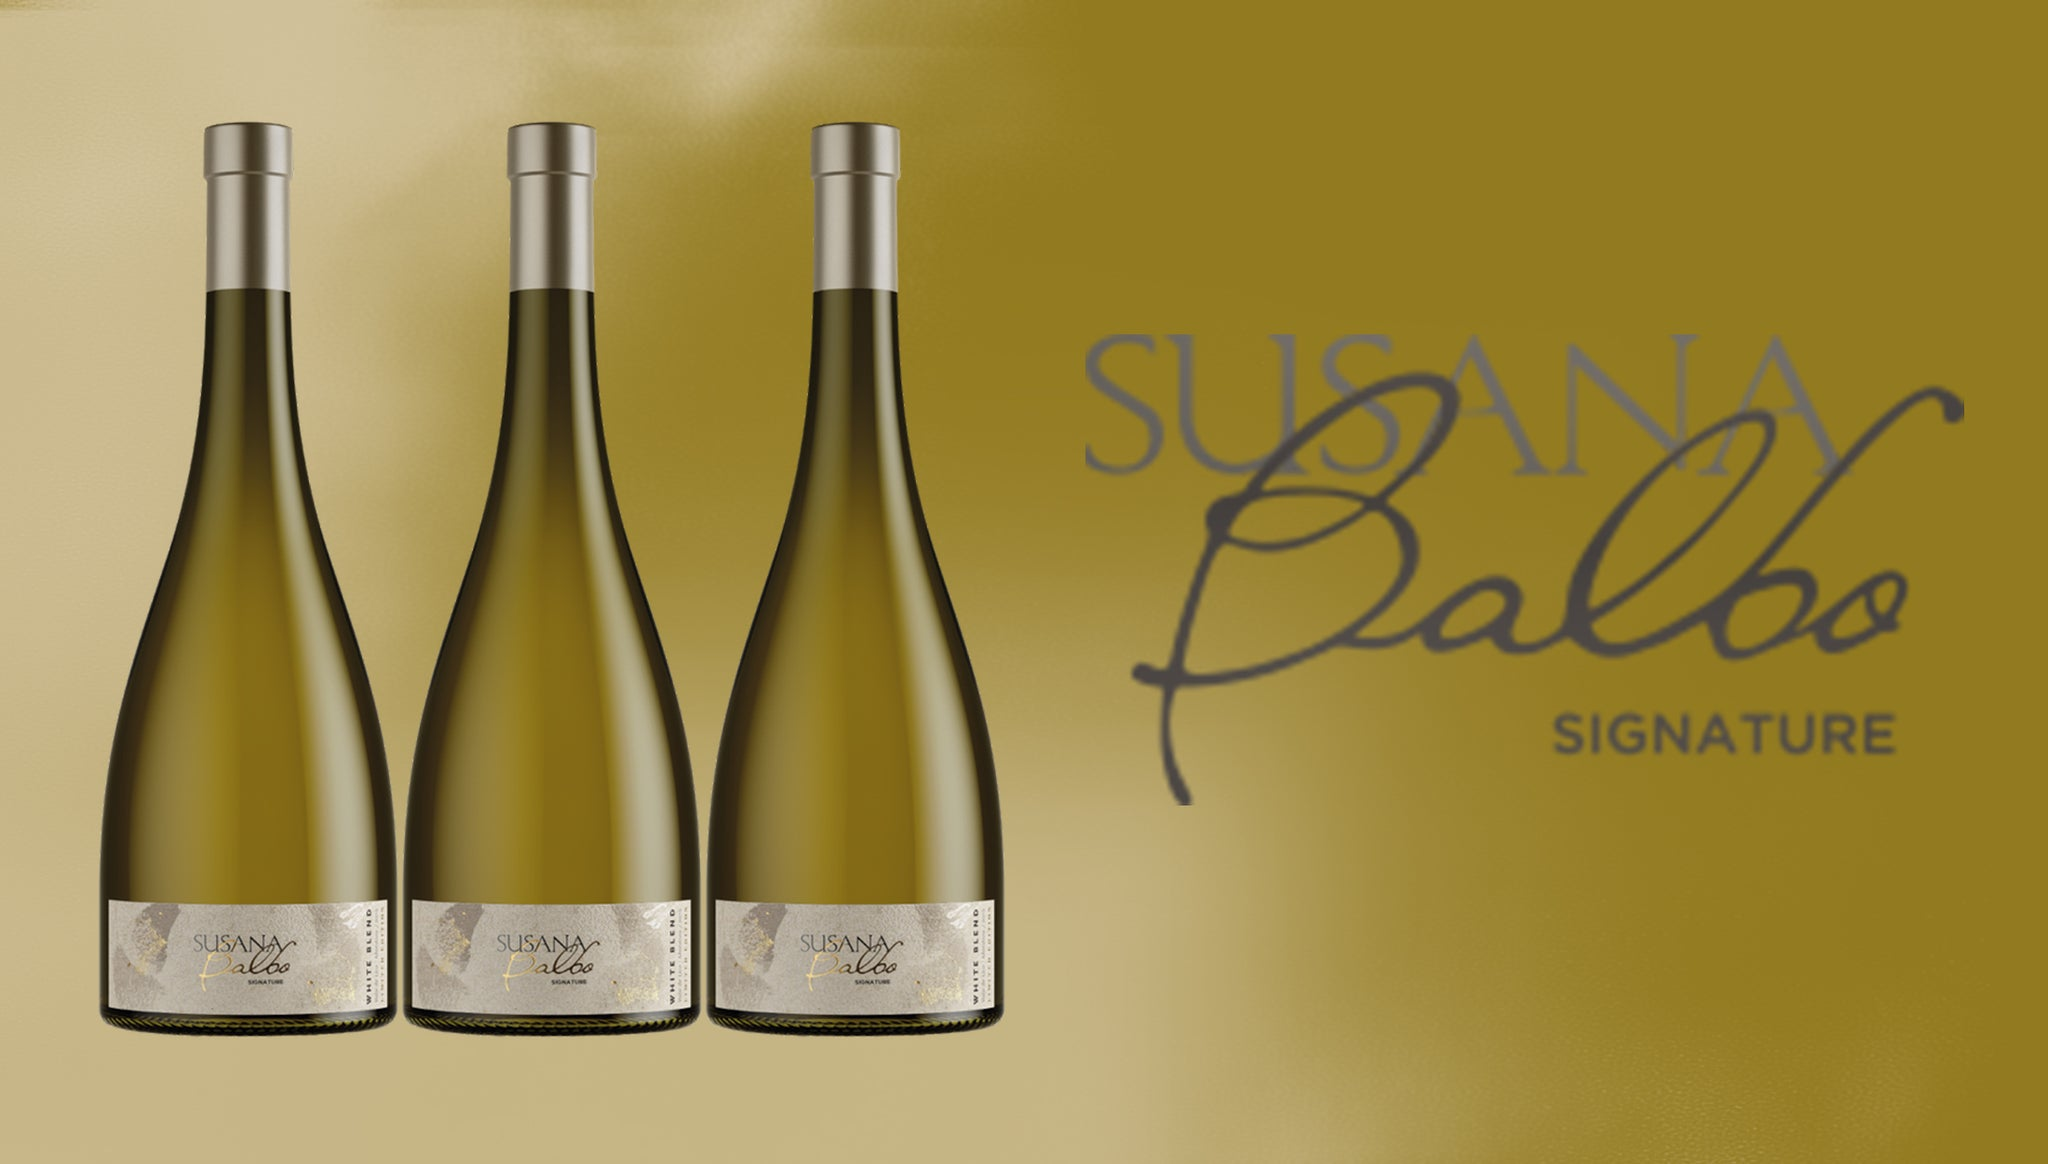 Wine Wednesday - Susana Balbo